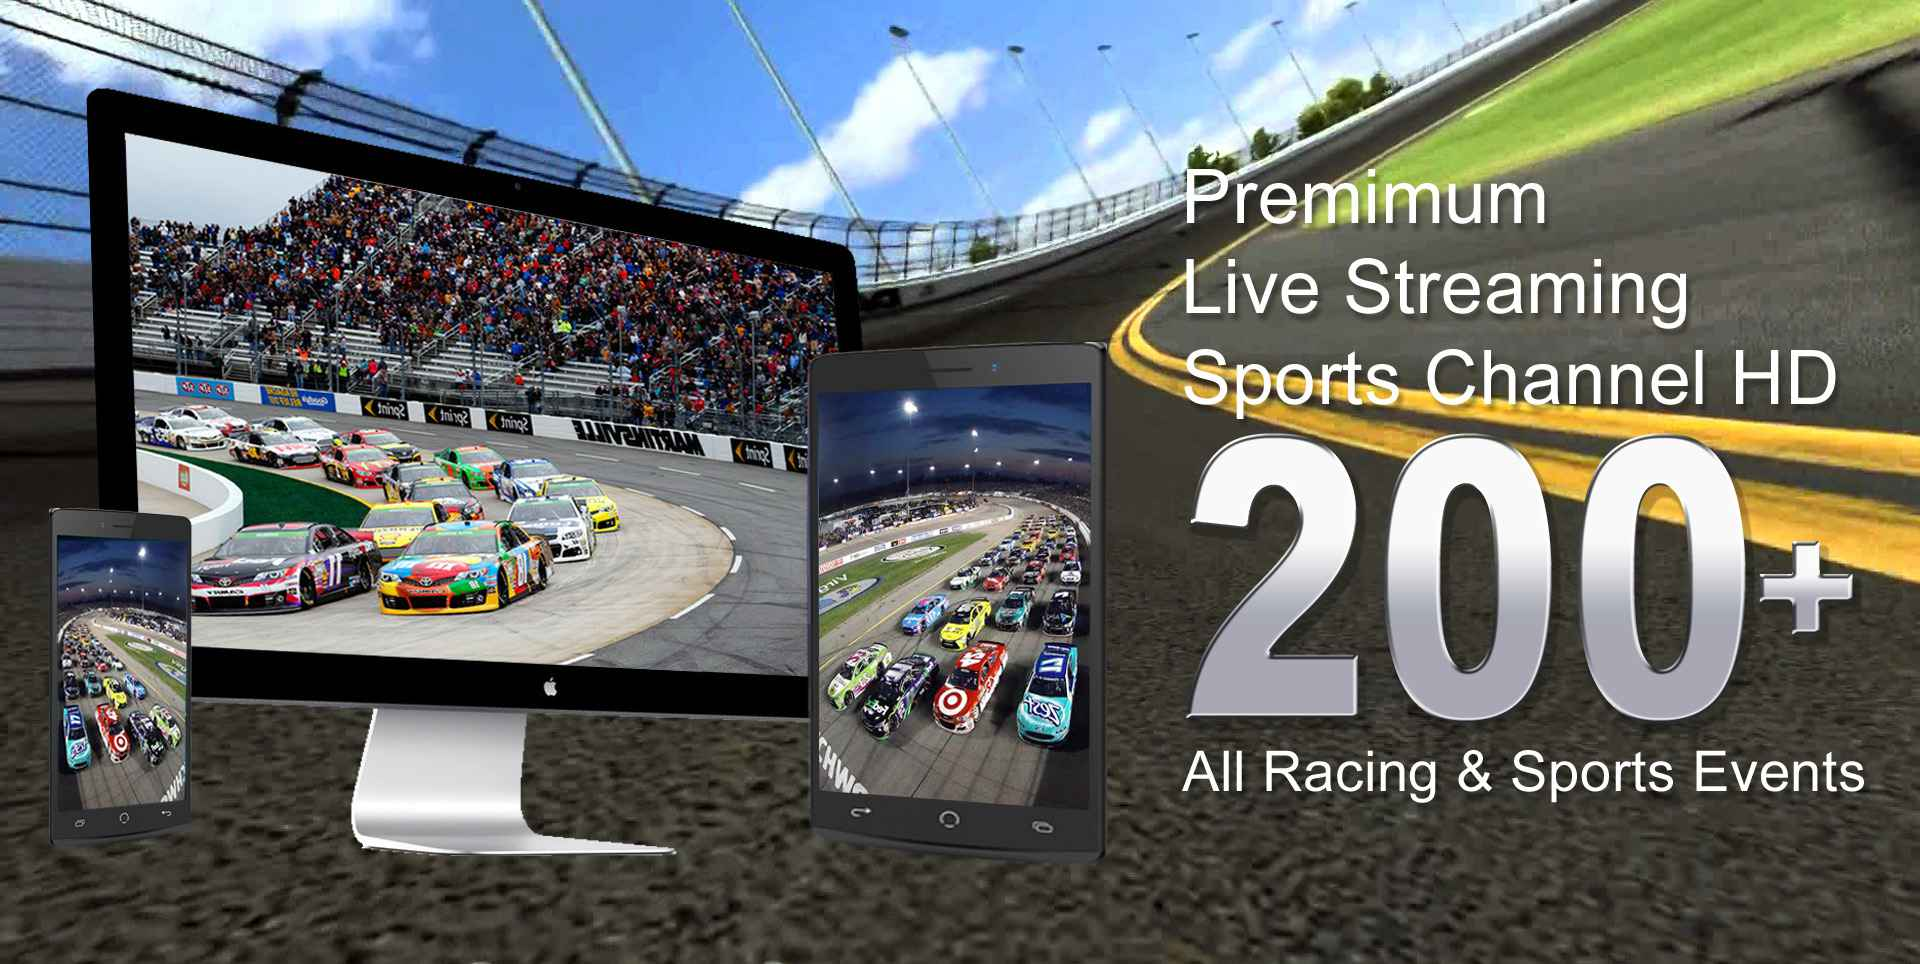 Nascar XFINITY Series Race Food City 300 Live